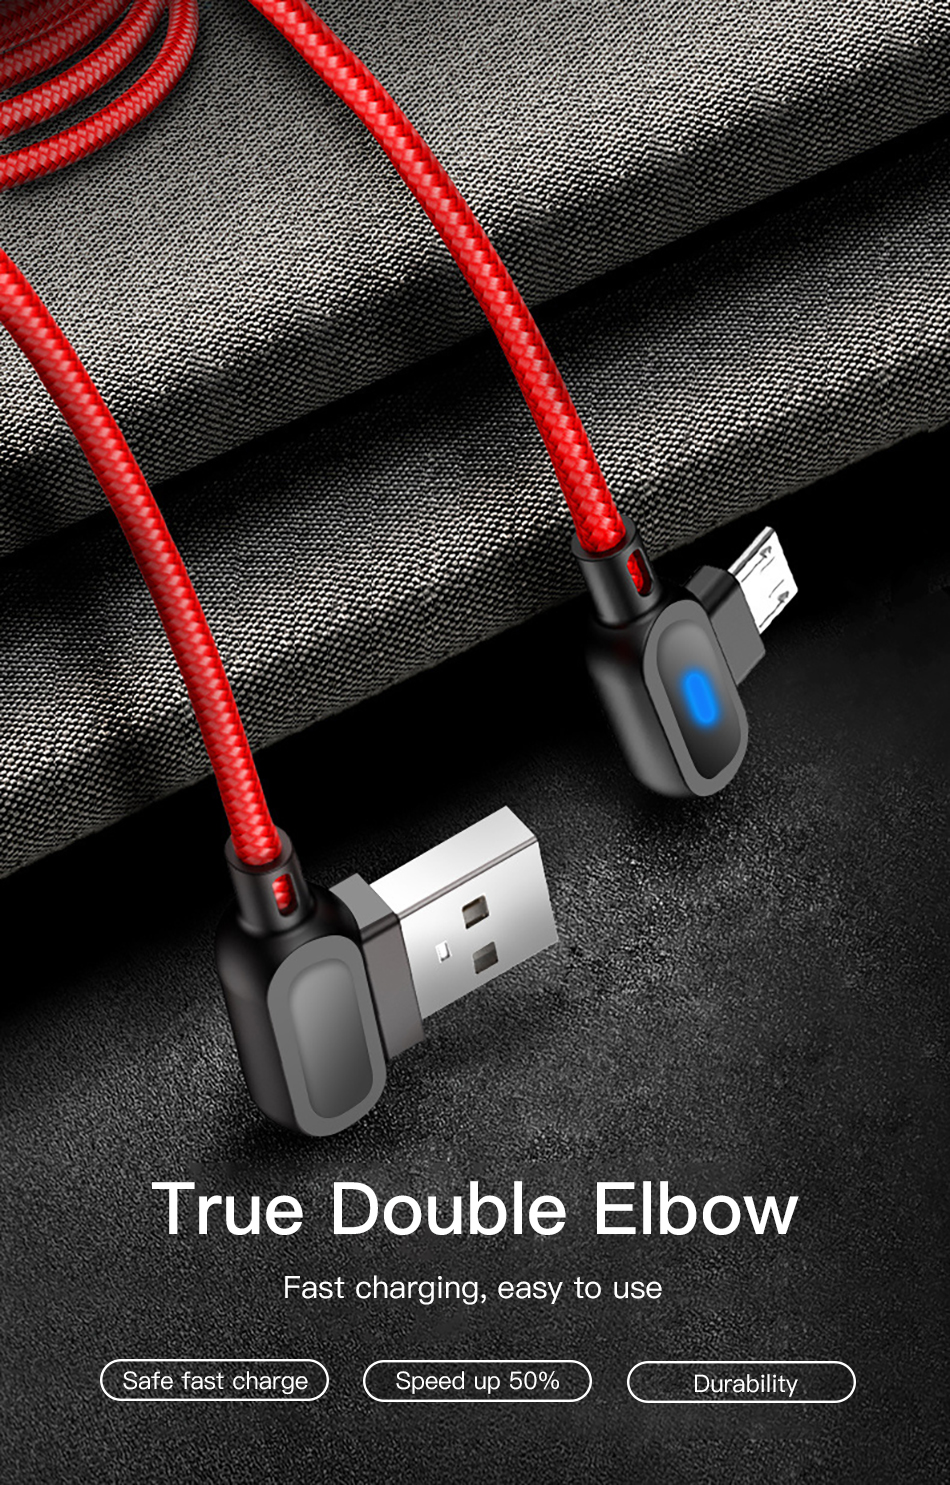 !ACCEZZ 90 Degree Micro USB Cable Fast Charging For Xiaomi Redmi Note 5 Pro Samsung S6 S7 Huawei Tablet Android Data Sync Cables (2)